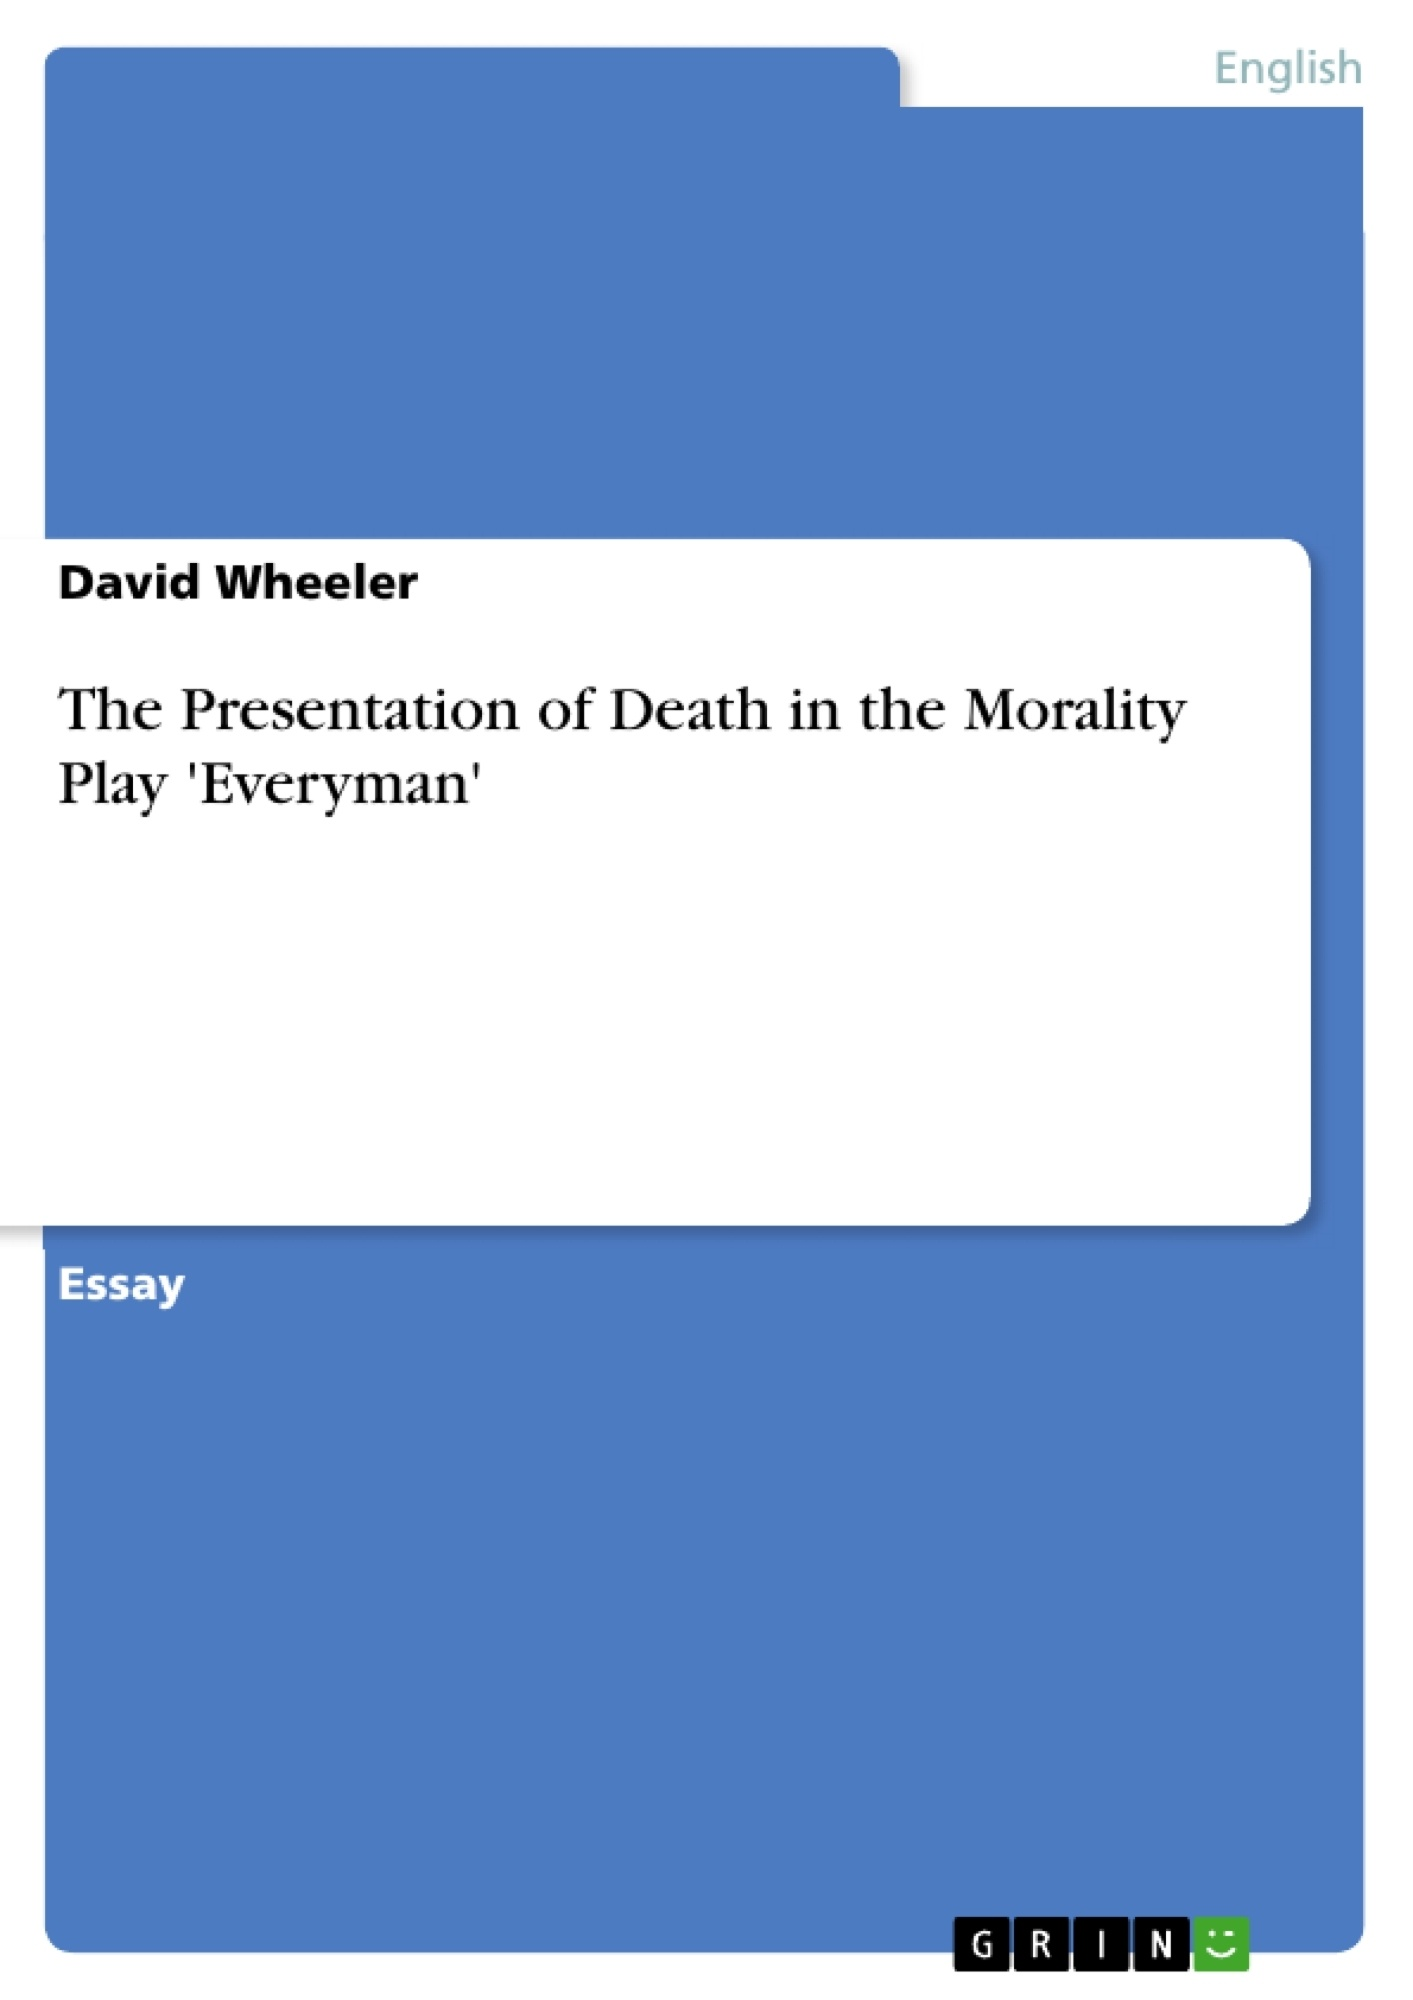 everyman essay the presentation of death in the morality play  the presentation of death in the morality play everyman upload your own papers earn money and